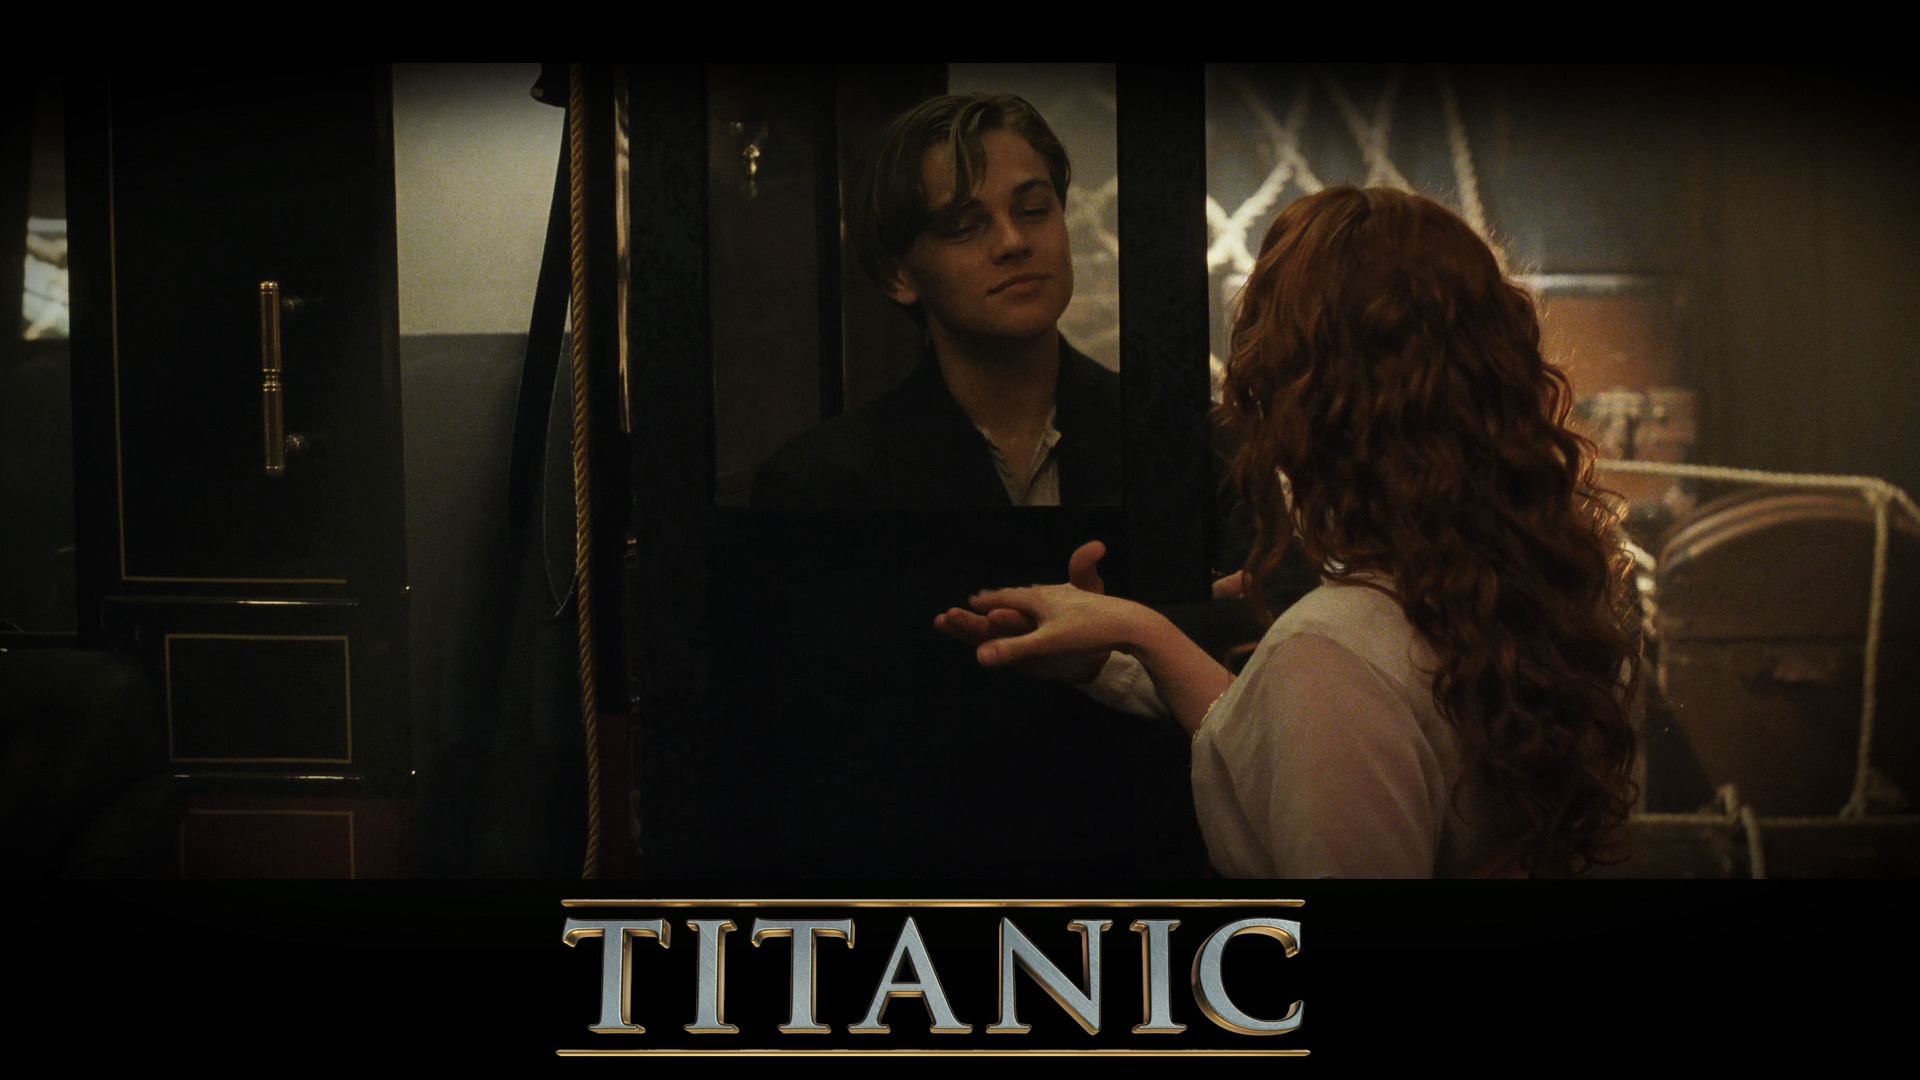 Wallpaper Of Titanic 65 Images